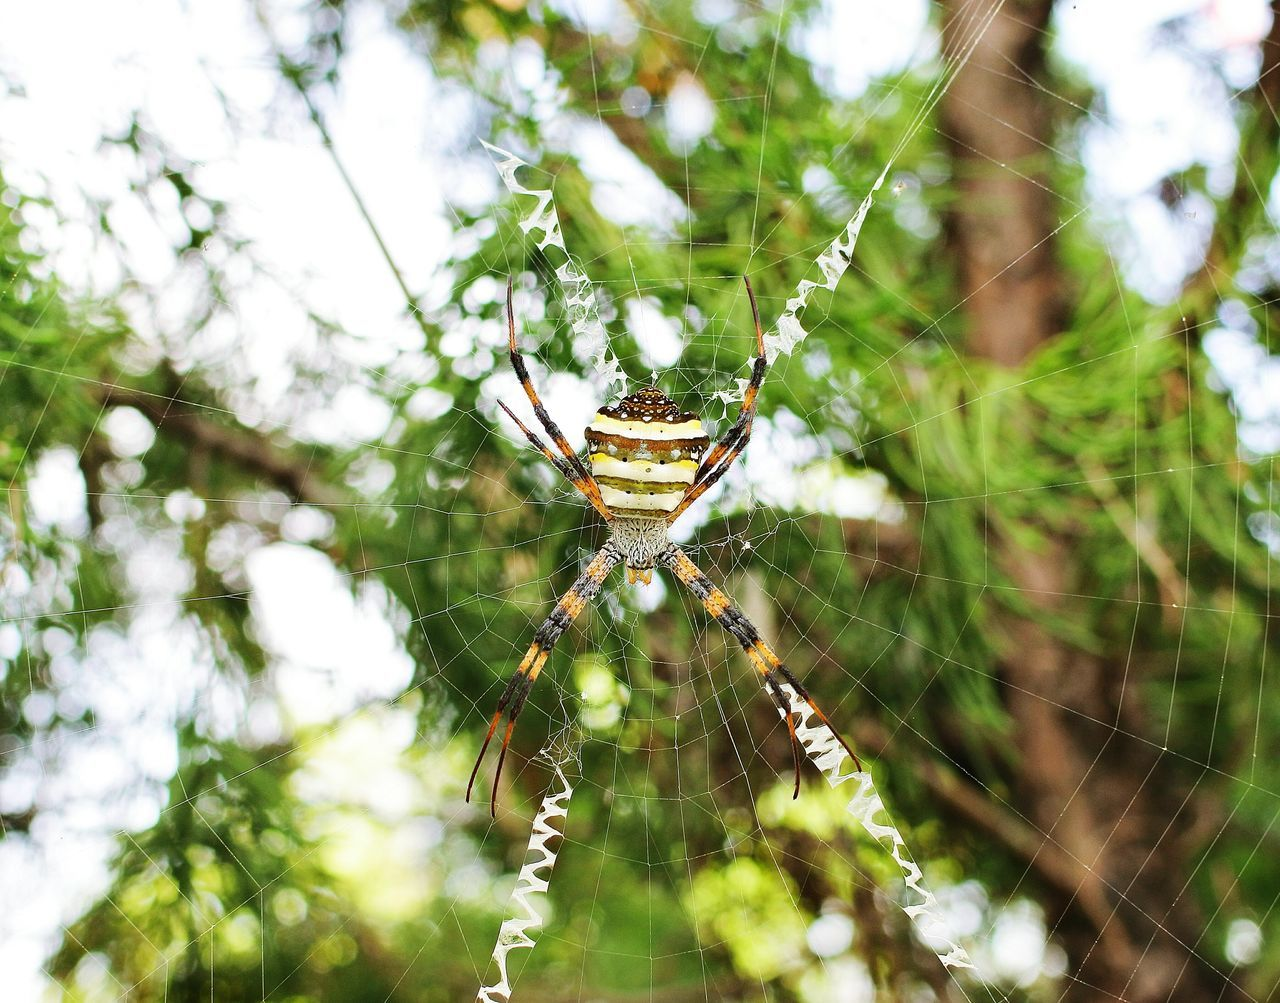 spider web, spider, one animal, animal themes, web, animals in the wild, nature, focus on foreground, survival, day, no people, weaving, outdoors, insect, close-up, animal wildlife, trapped, beauty in nature